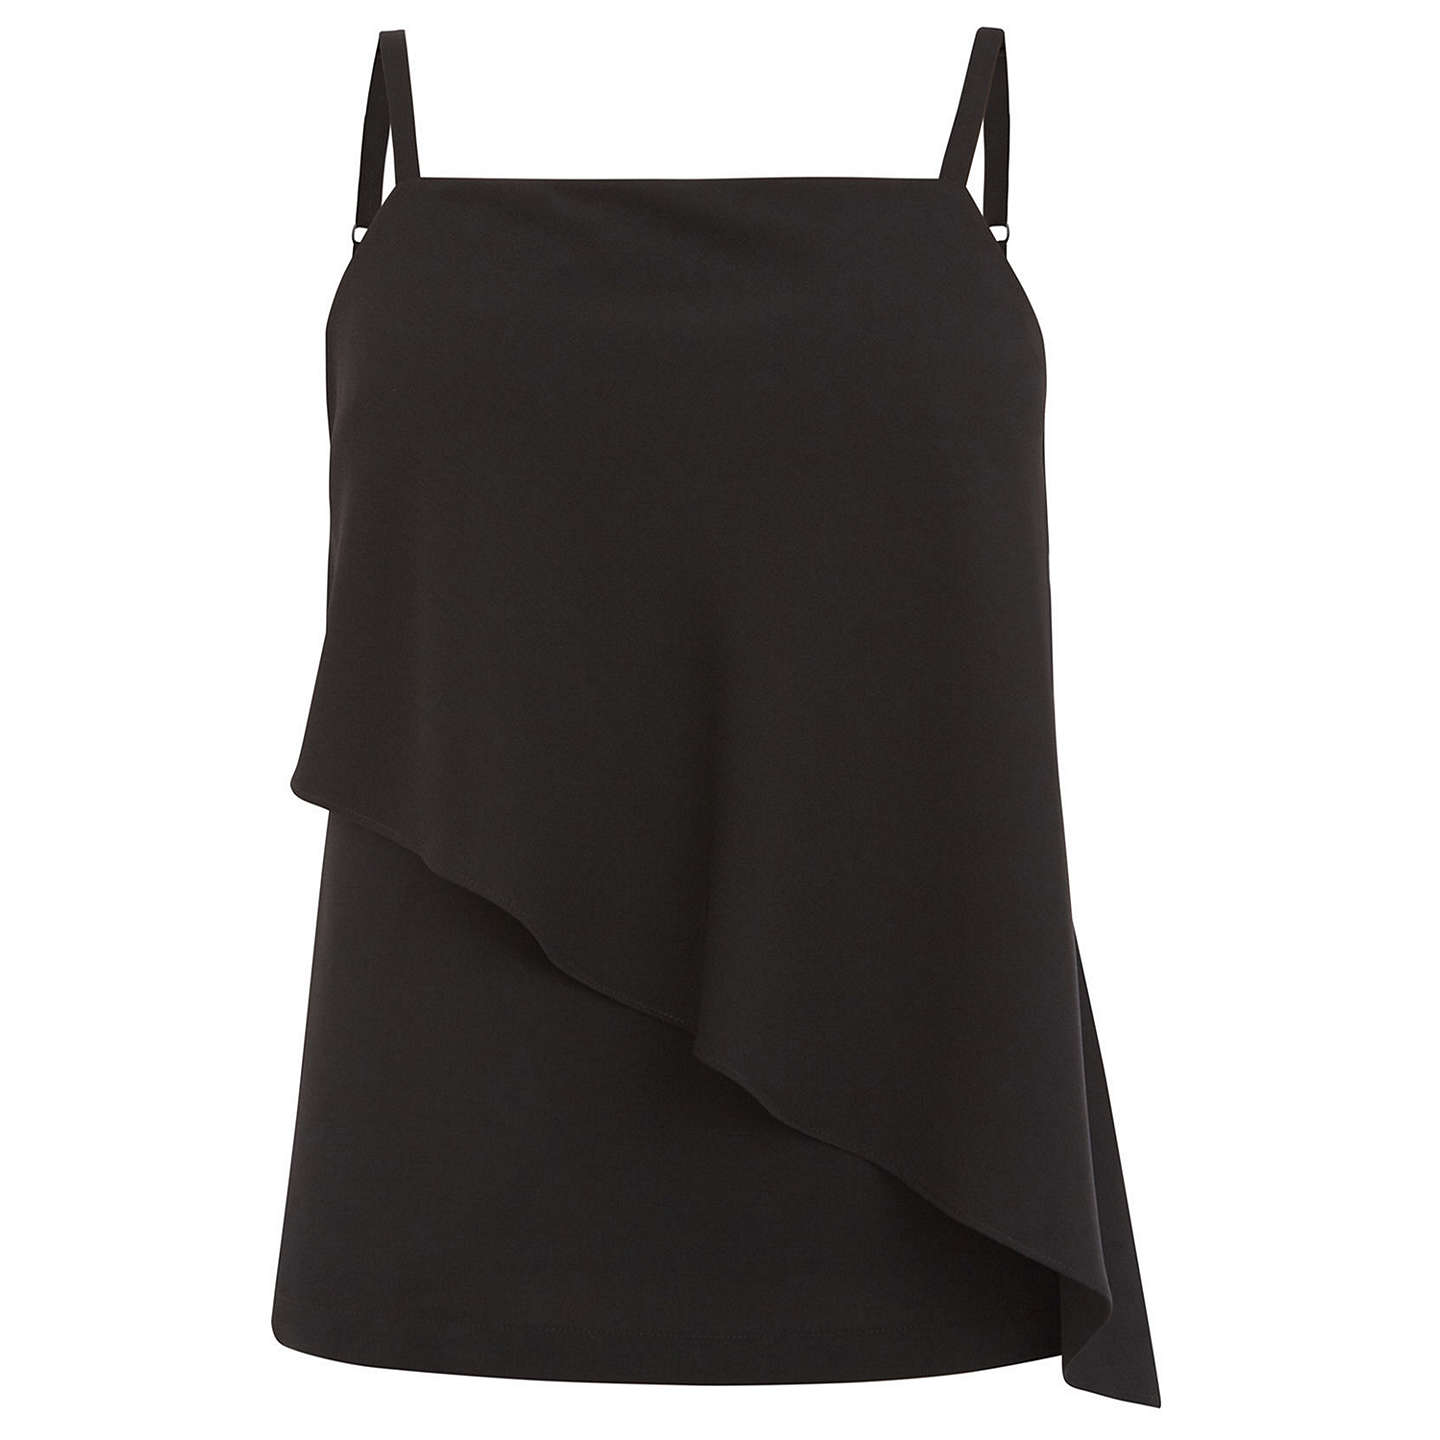 BuyWarehouse Asymmetric Woven Mix Cami, Black, 6 Online at johnlewis.com